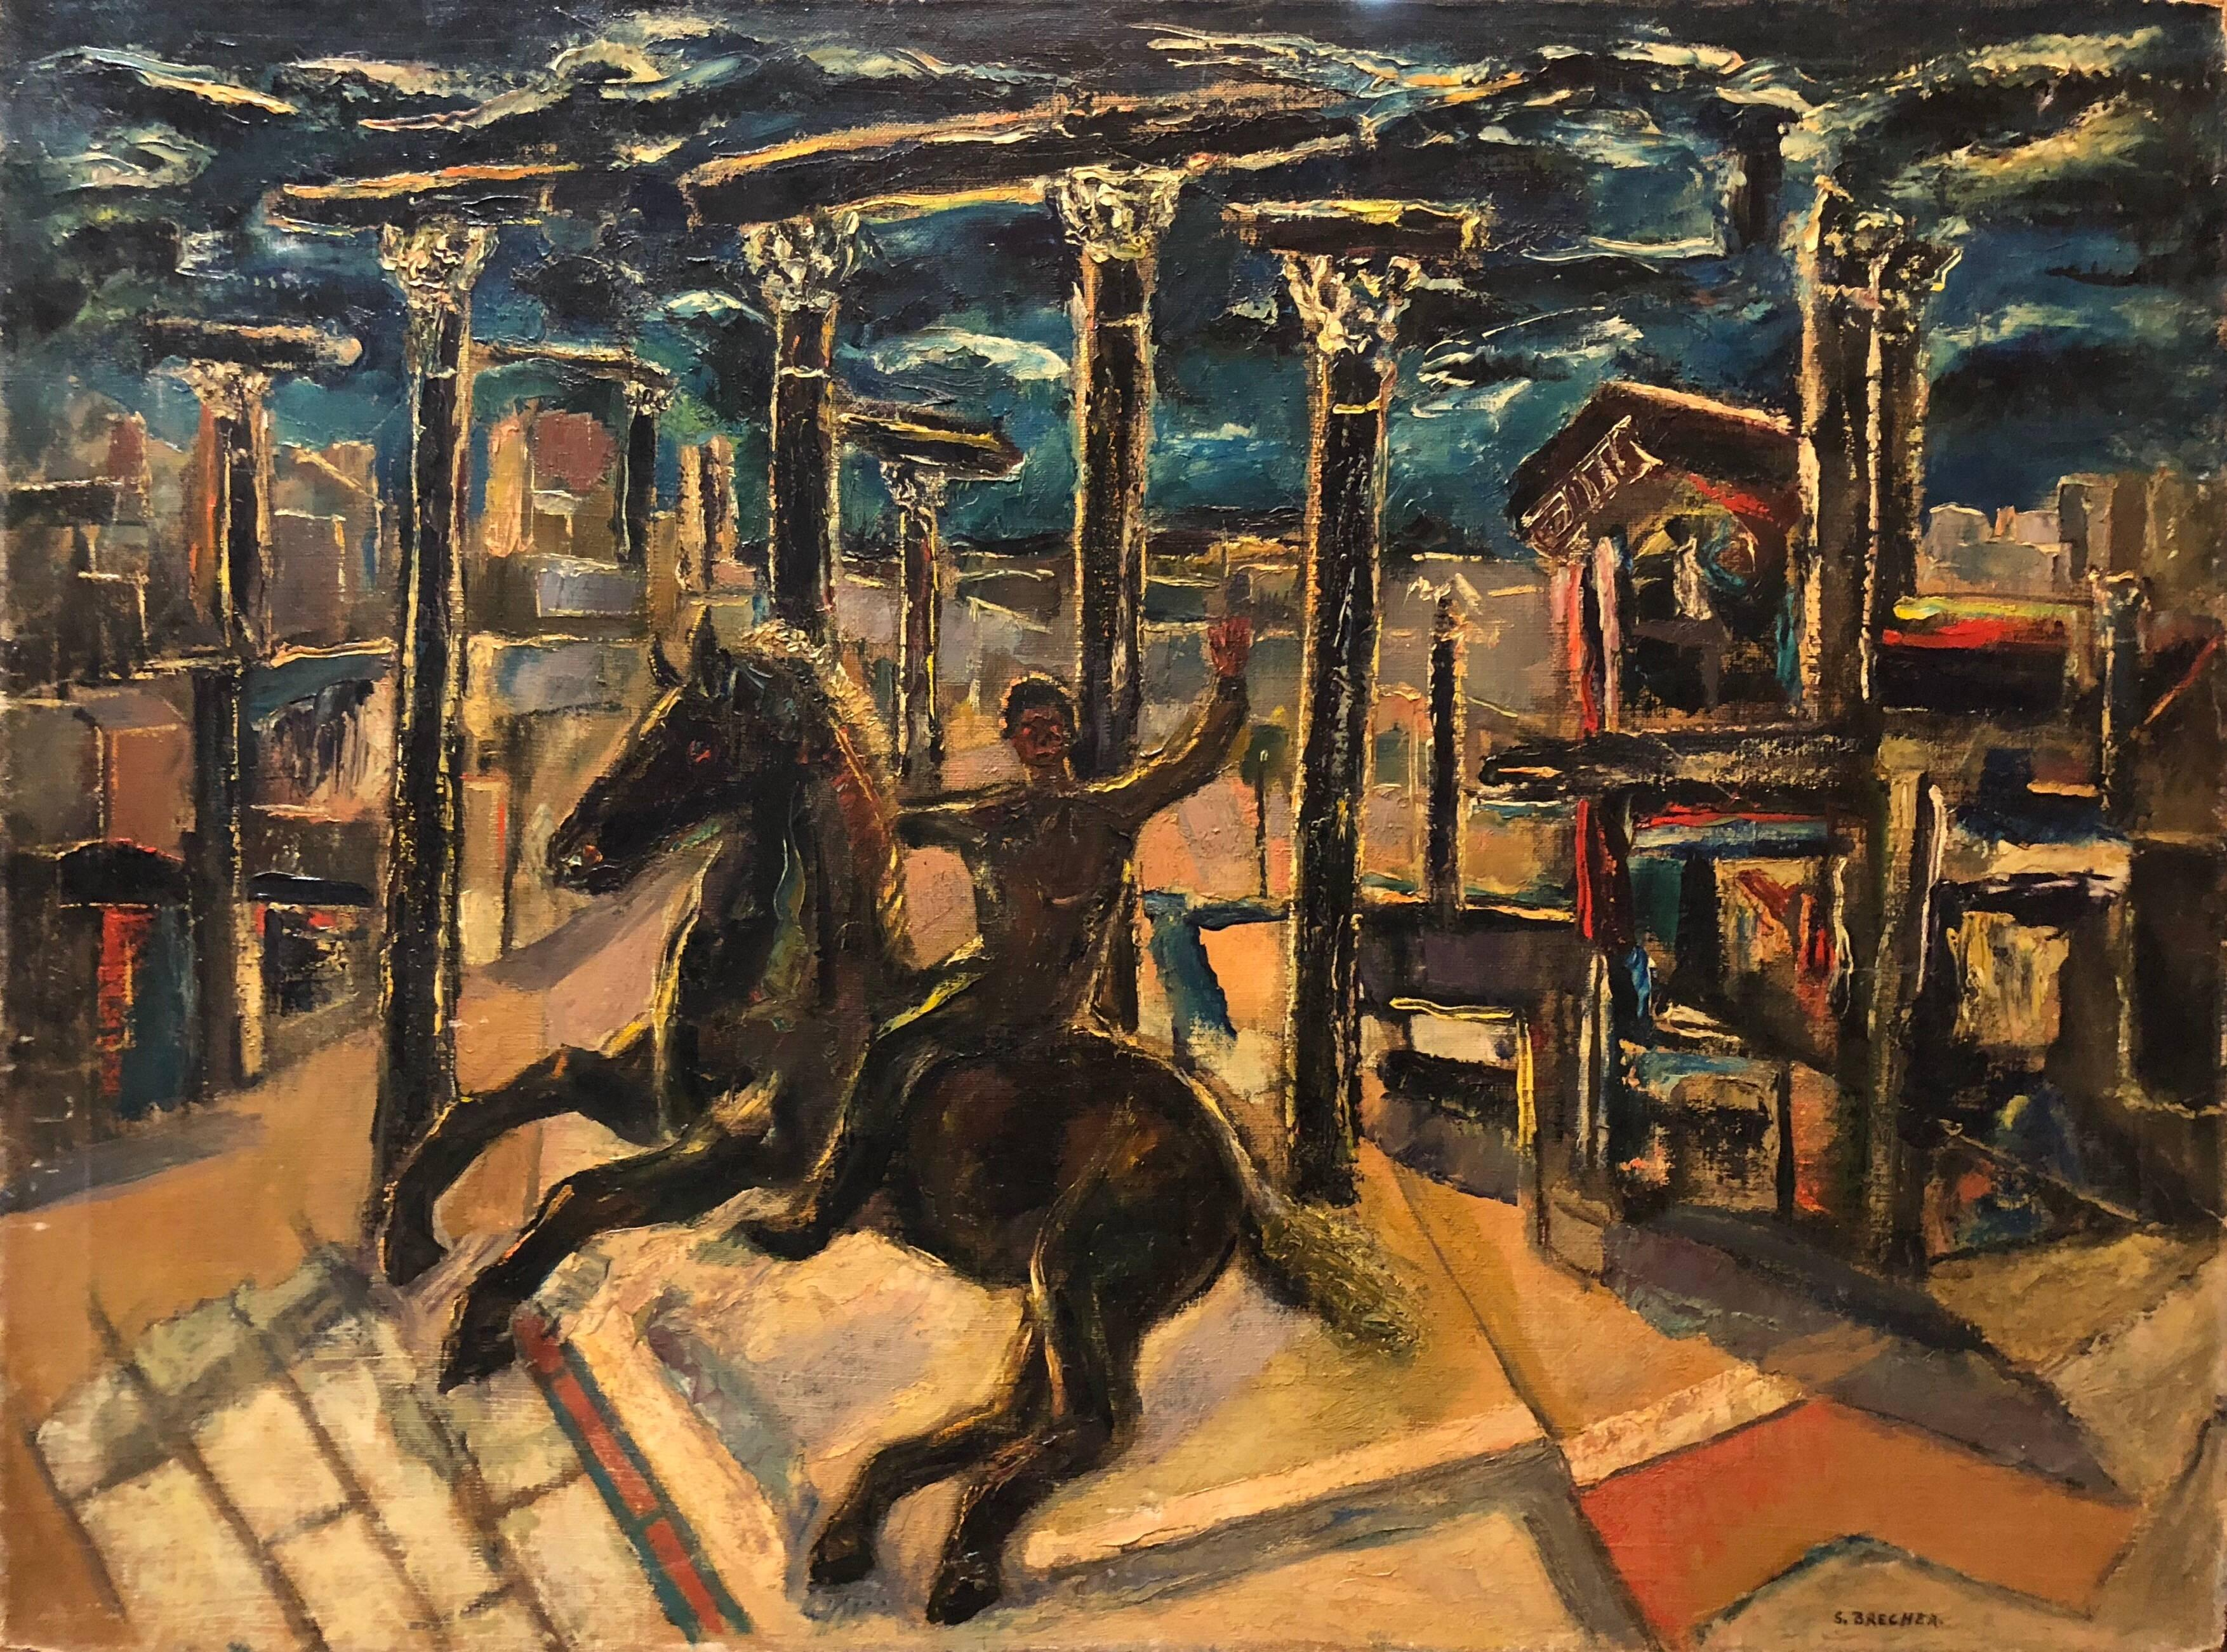 Yesterday's, Surrealist Horse Rider, Architectural Ruins Modernist Oil Painting